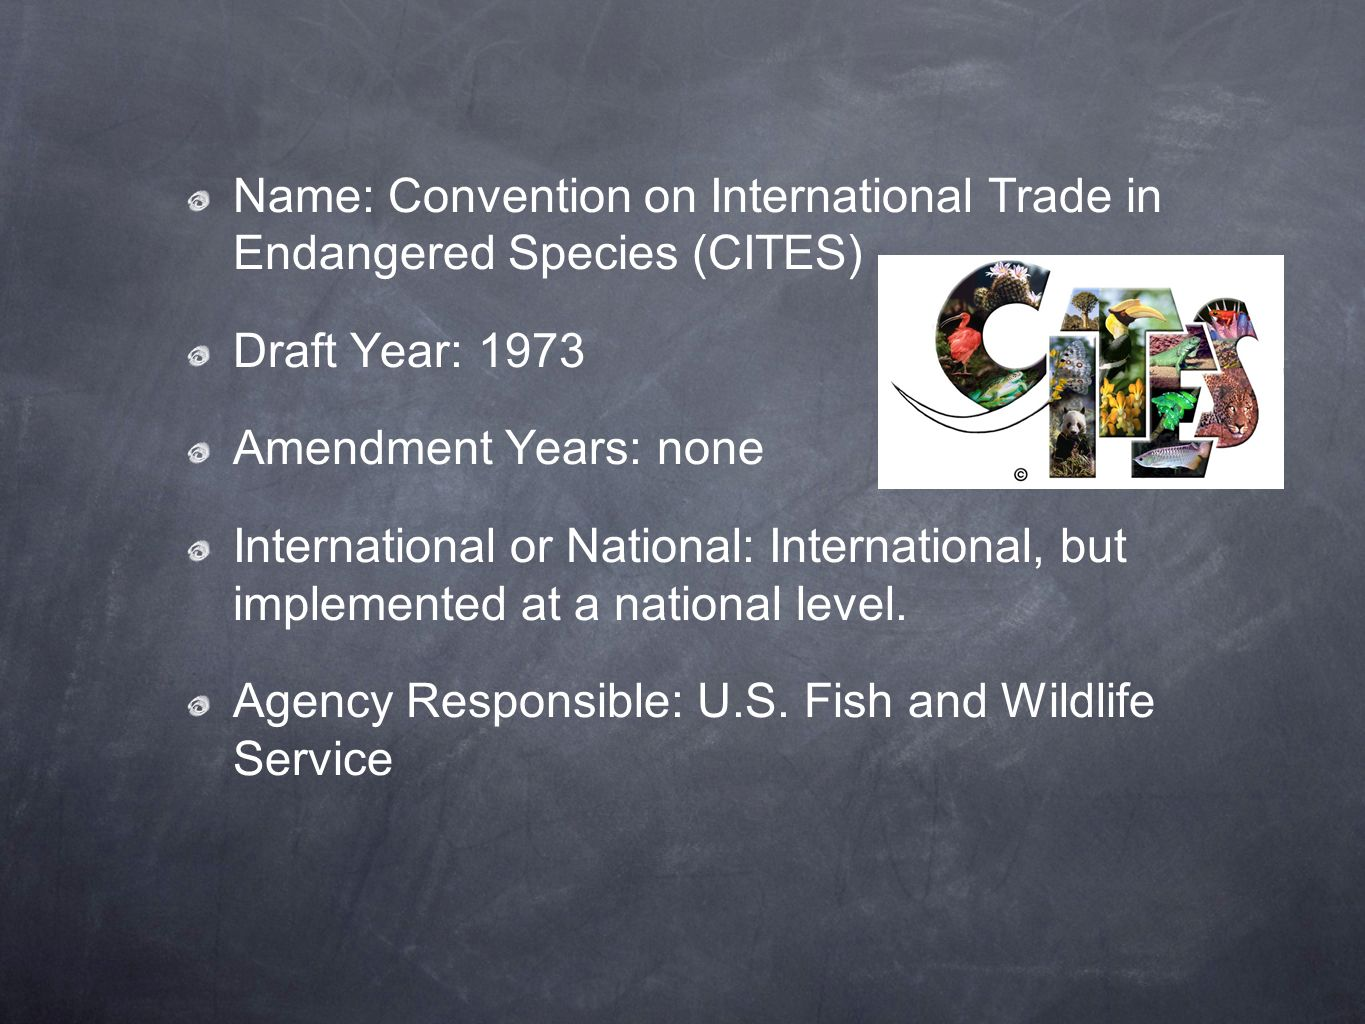 Name: Convention on International Trade in Endangered Species (CITES)